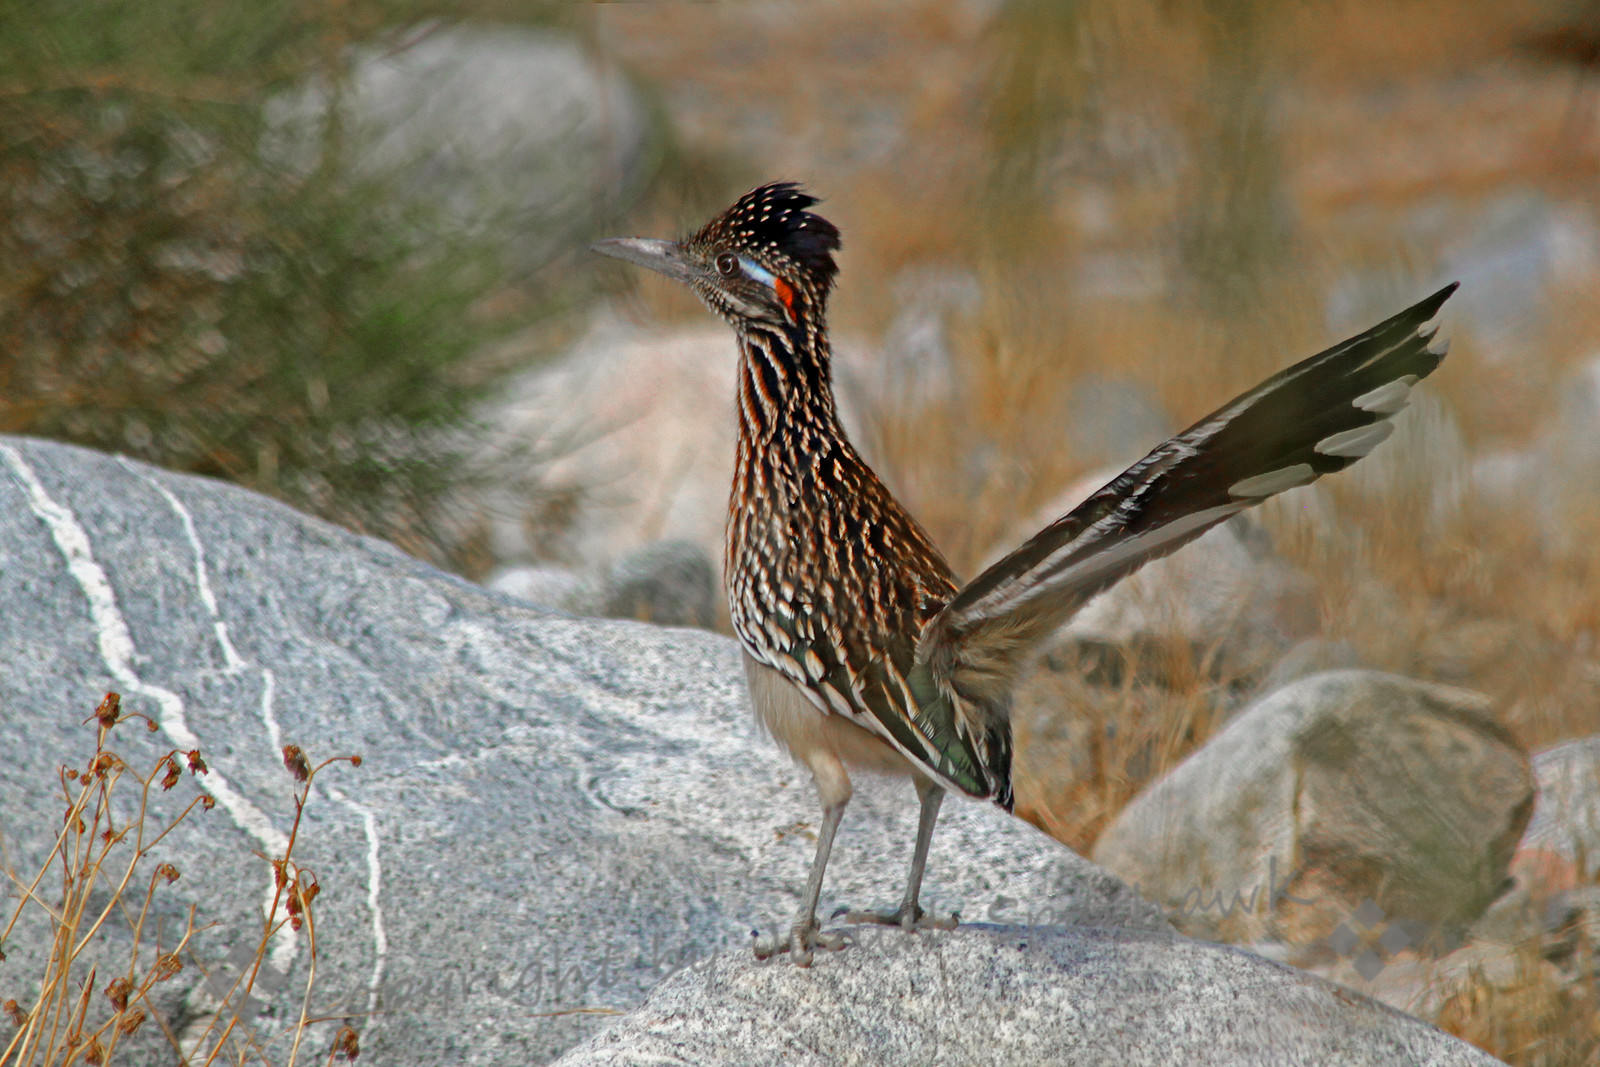 Greater Roadrunner ~ This roadrunner hopped on a rock, seeming to use it for a lookout.  I appreciated it for my photograph, as he wasn't down in the weeds.  This was taken at Whitewater Wildlands Preserve, in the desert near Palm Springs, CA.